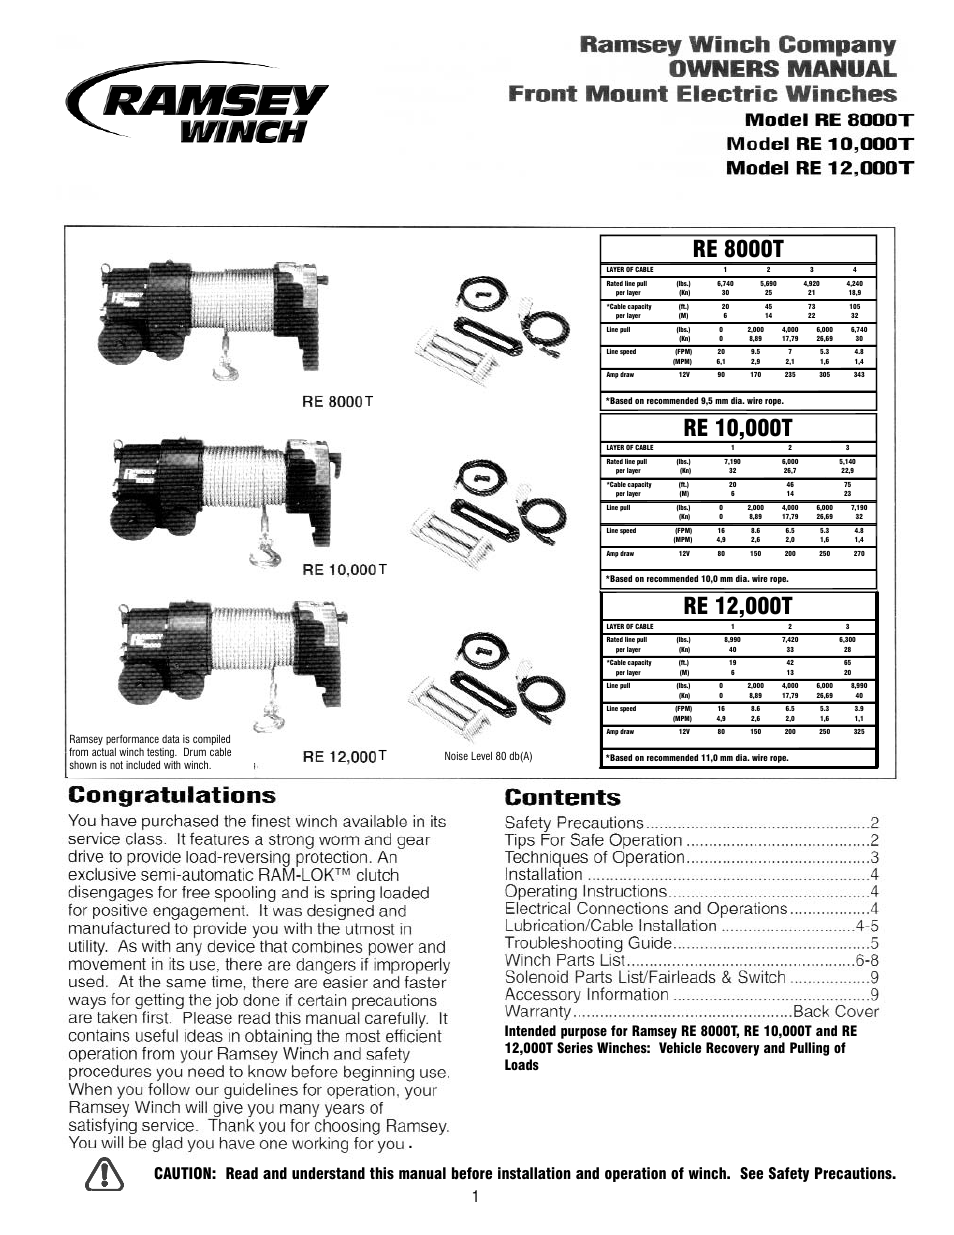 Ramsey Re 12000 Winch Wiring Diagram : 36 Wiring Diagram